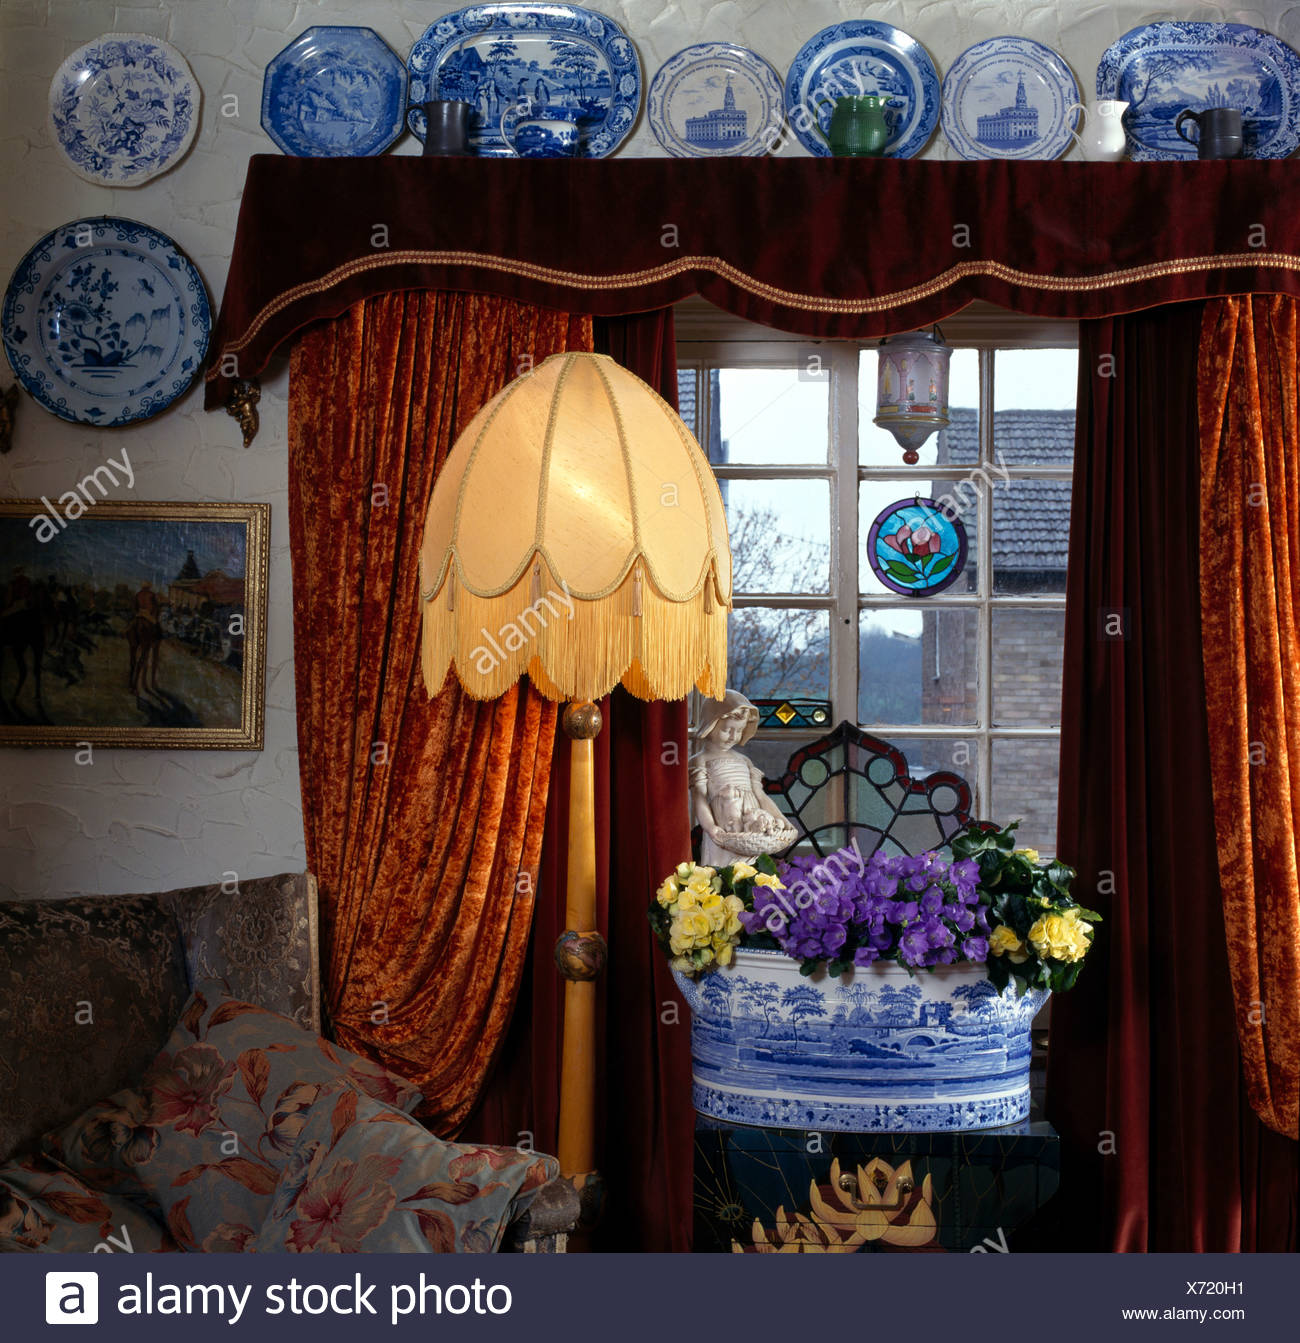 Blue White China On Wall Above Window With Red Brown Velvet Curtains In Cottage Living Room With Lighted Thirties Floor Lamp Stock Photo Alamy